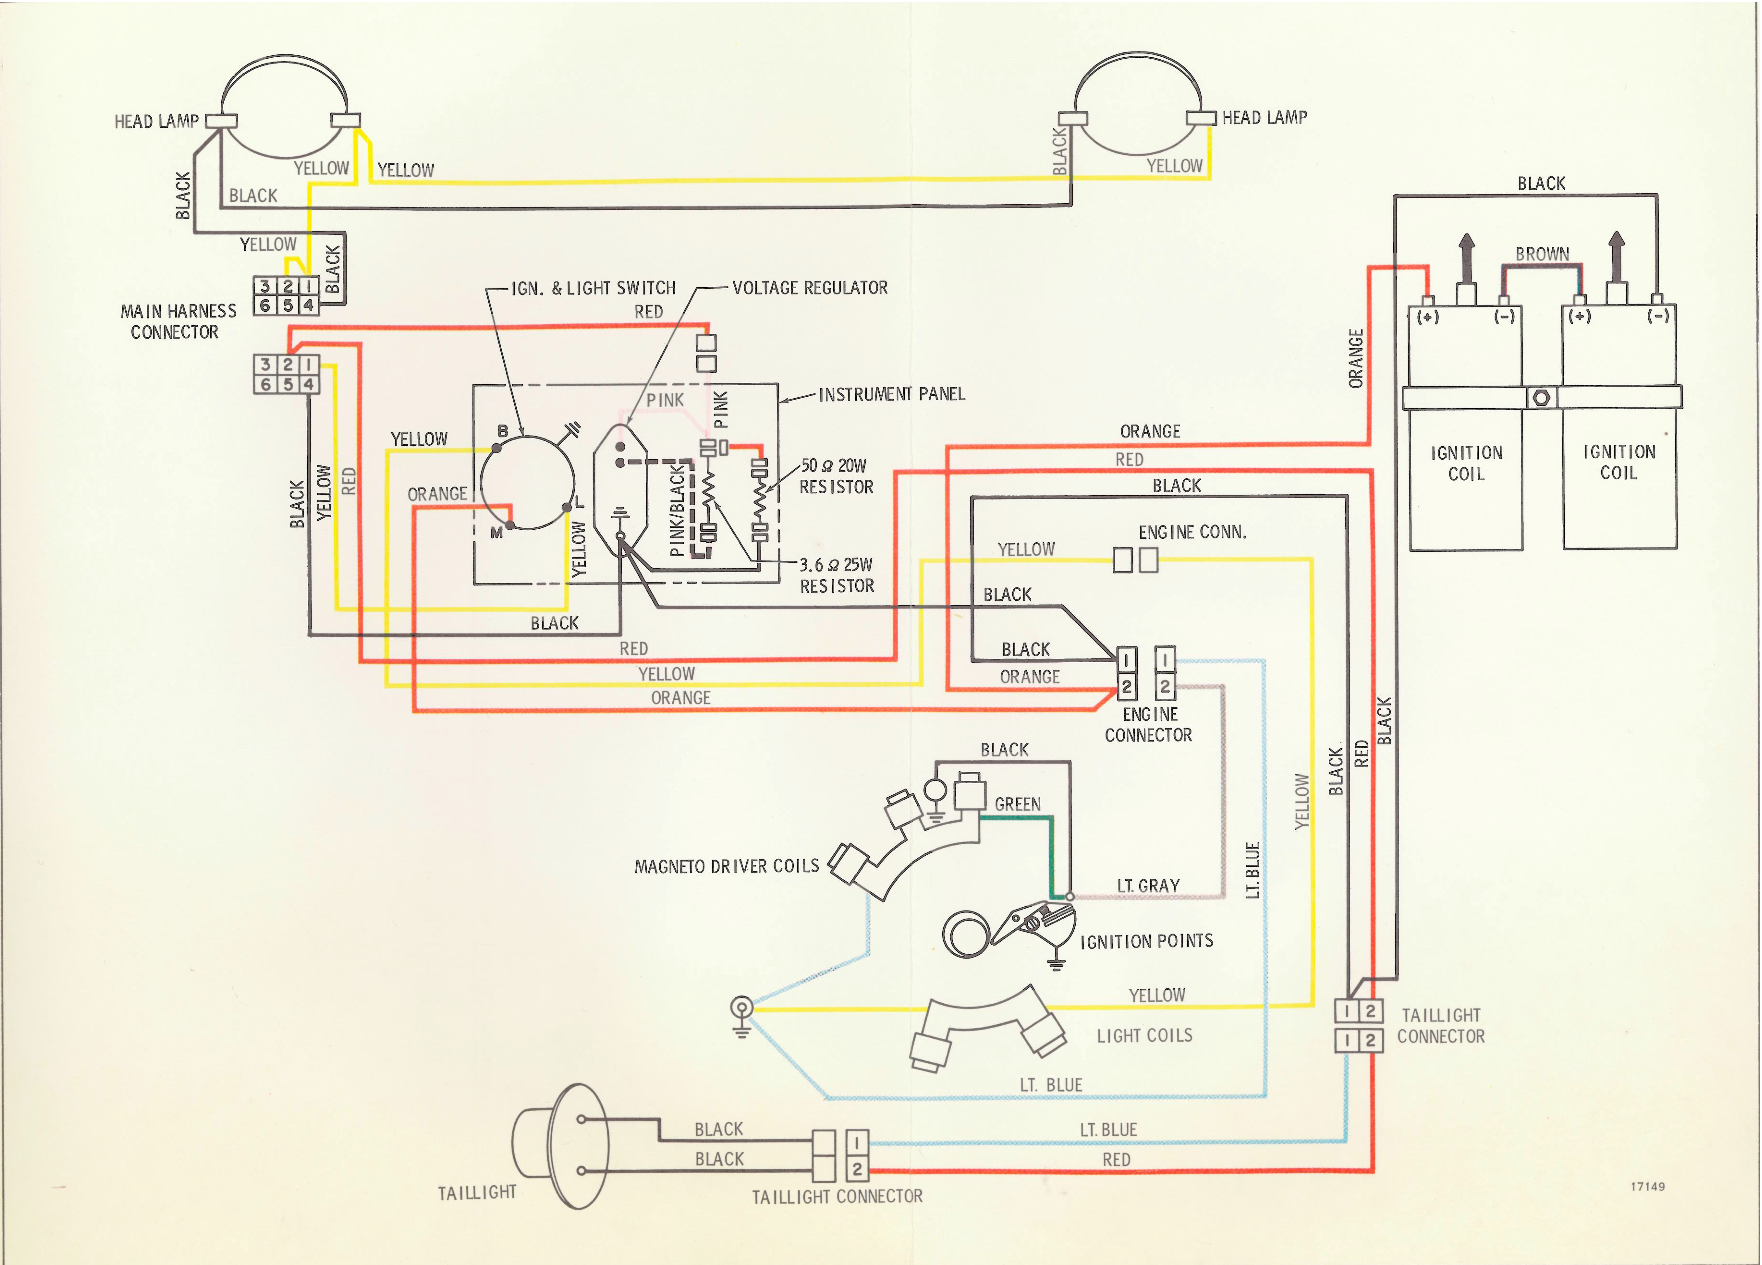 1971_Bobcat bobcat 753 wiring diagram 763 bobcat wiring diagram \u2022 wiring bobcat wiring harness at gsmportal.co